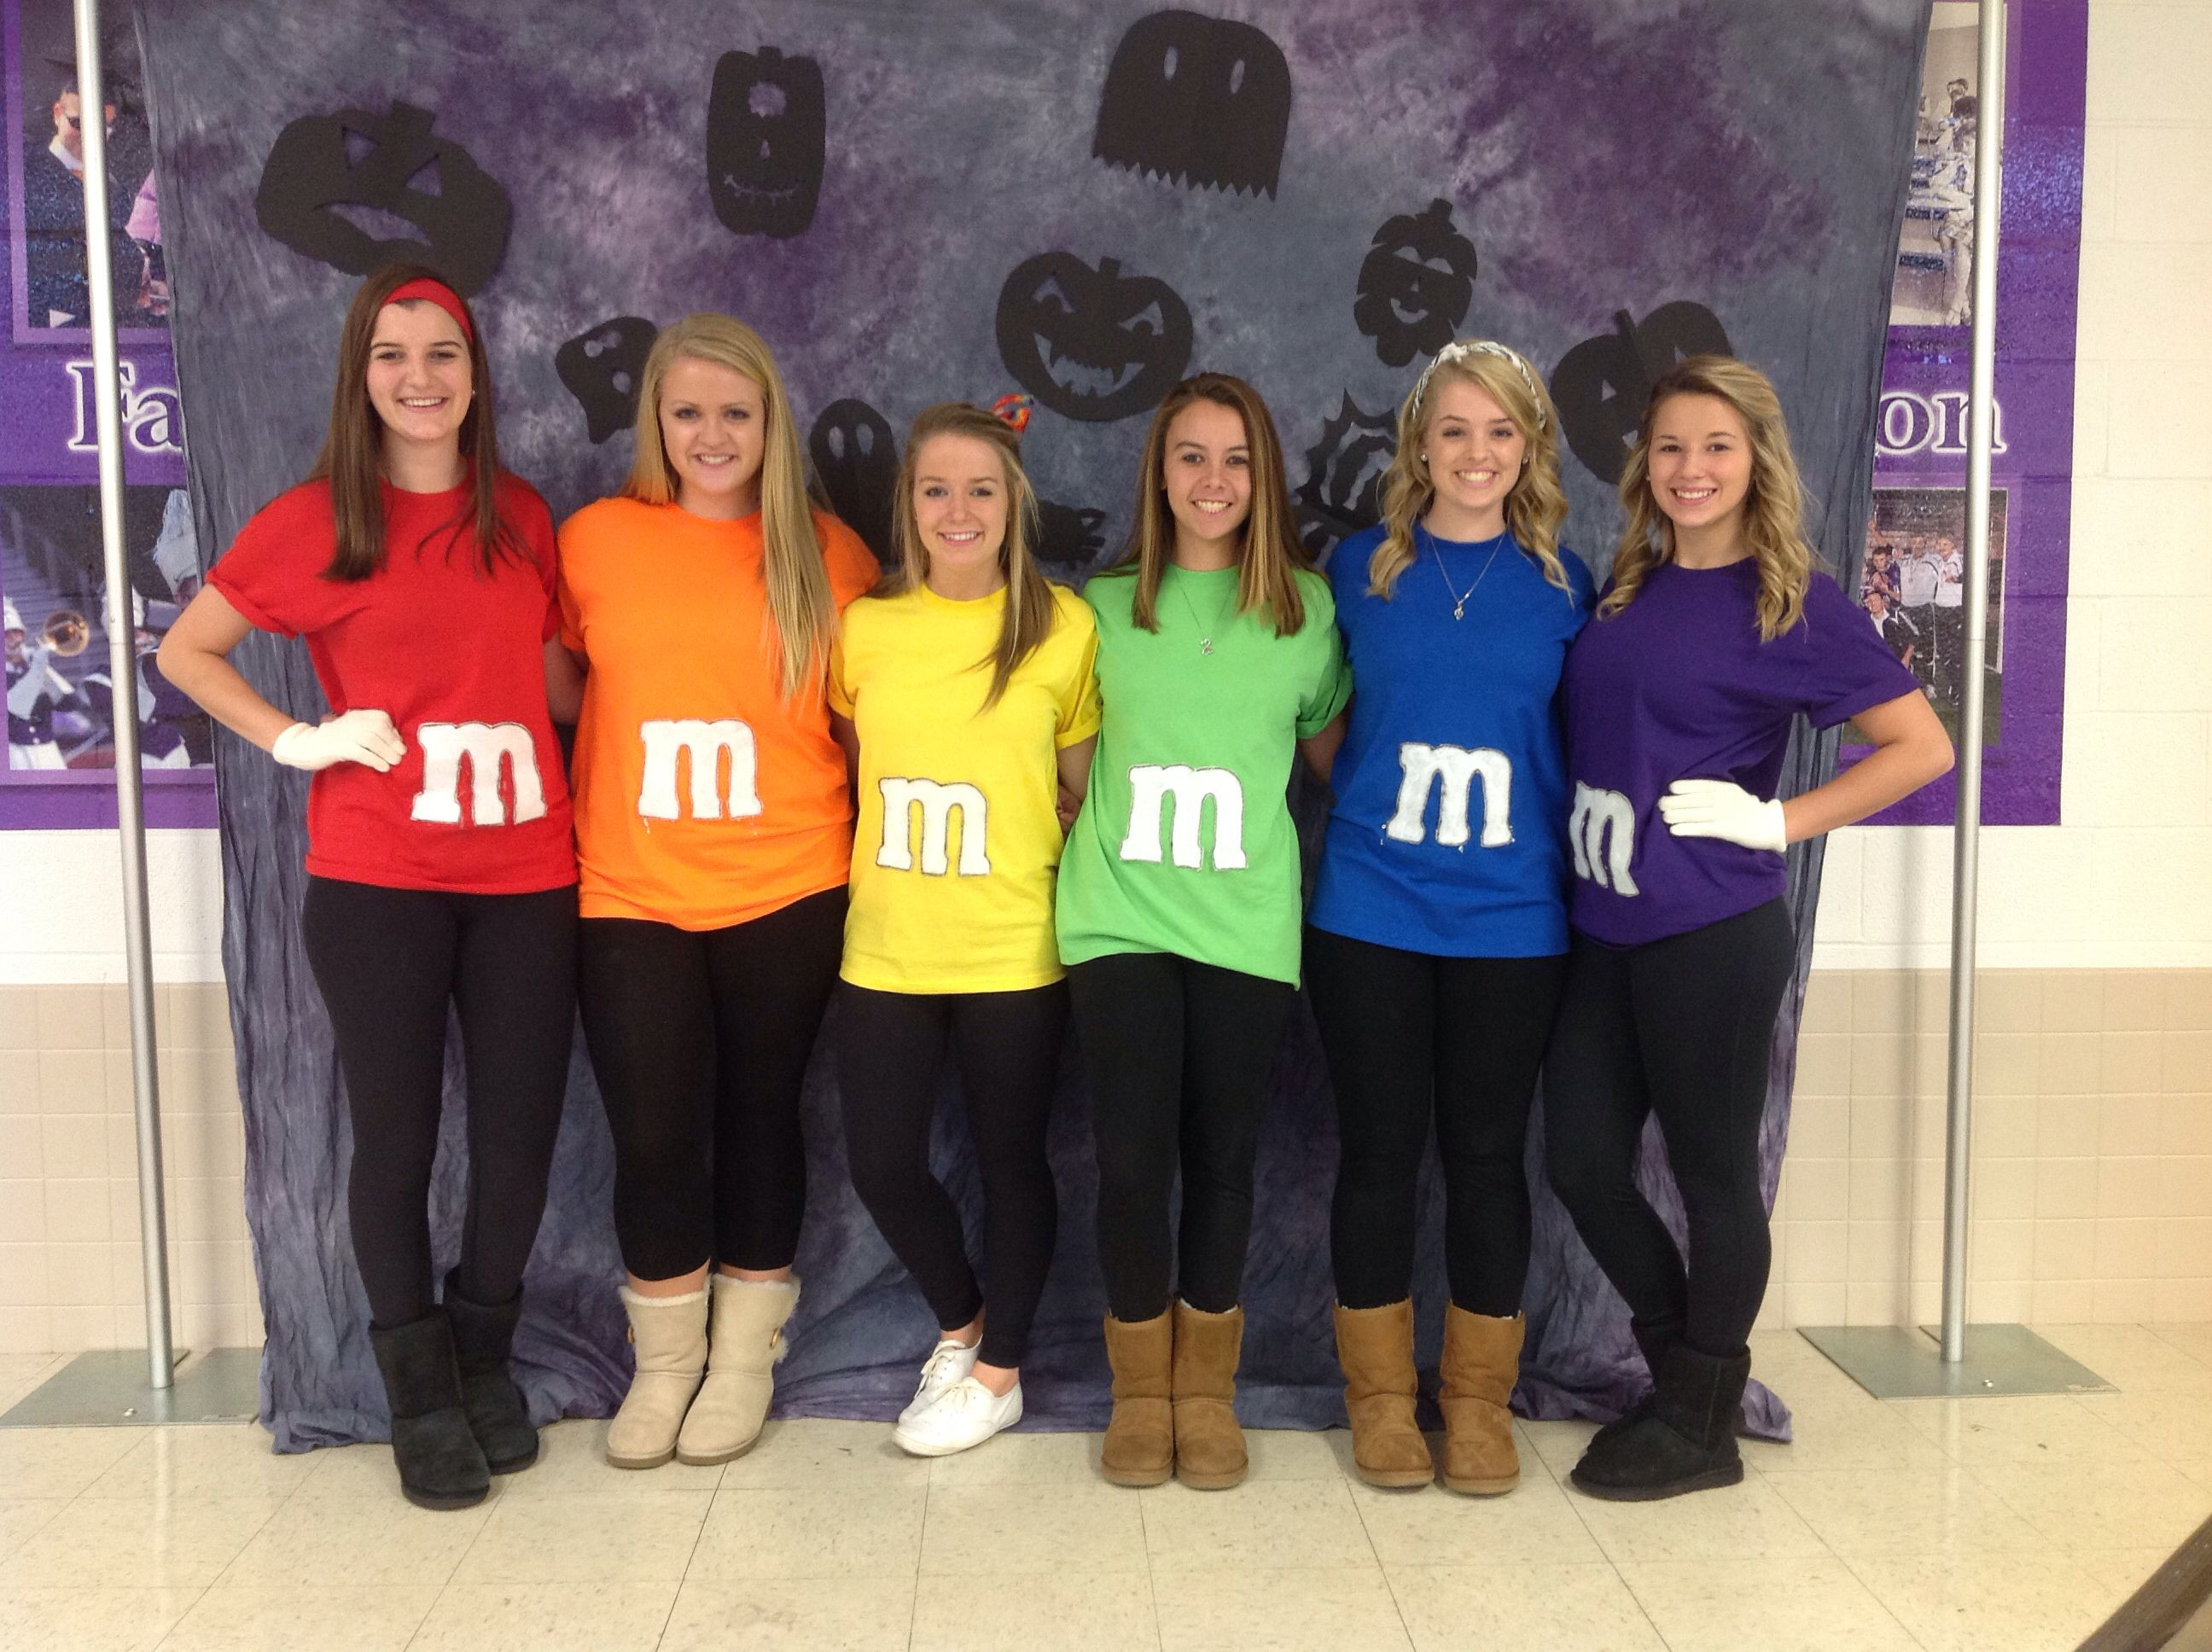 Best ideas about DIY M&M Costume . Save or Pin M&M s for this years Halloween costume diy Now.